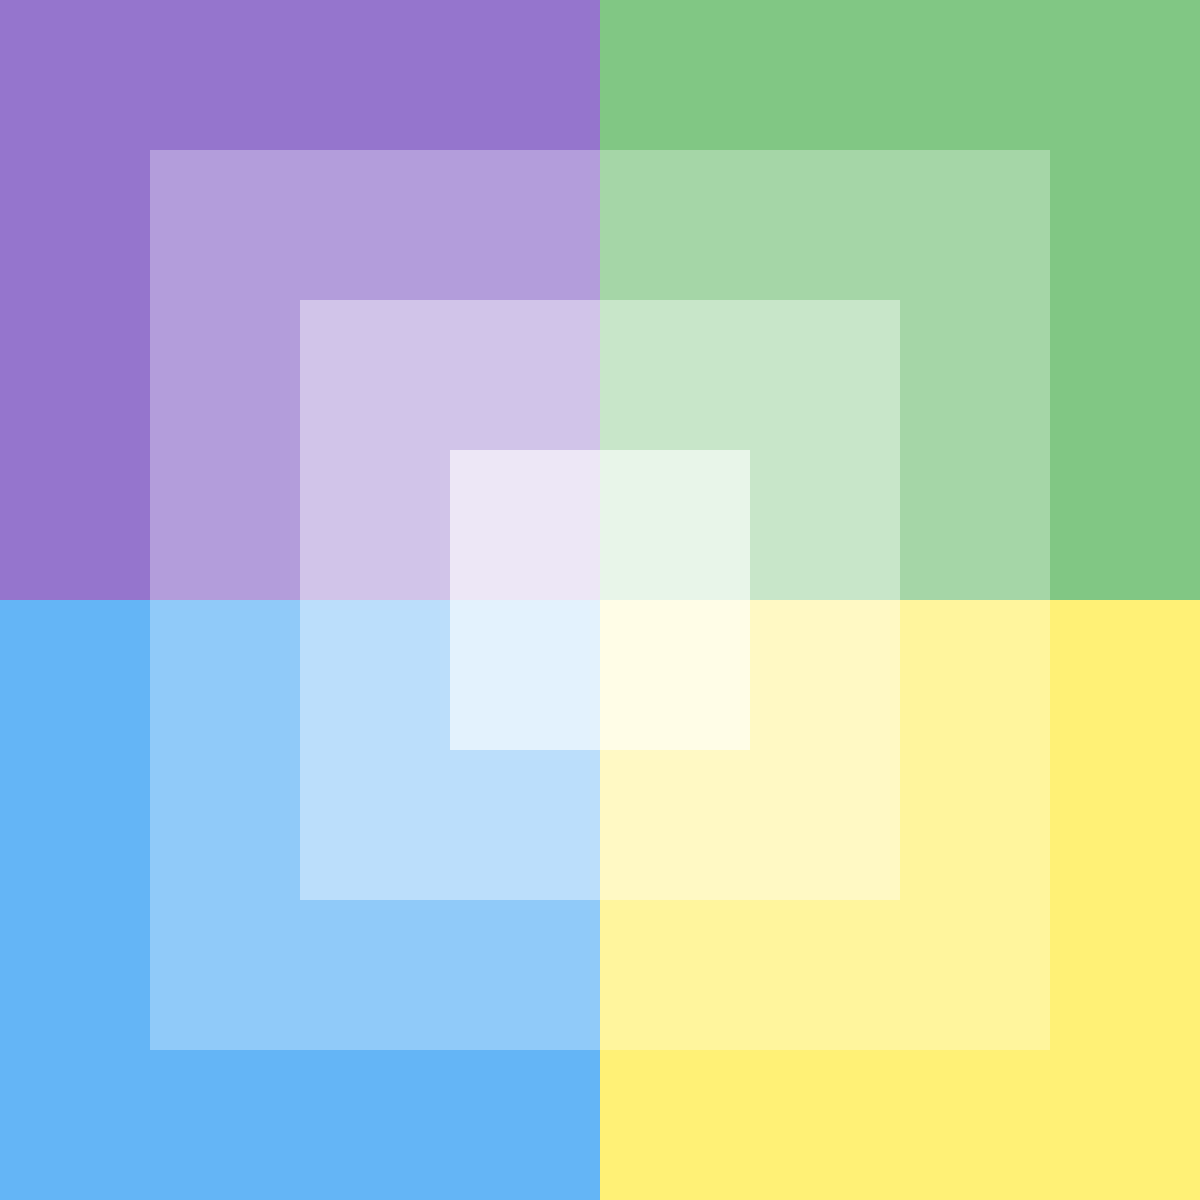 Purple blue green and yellow by Phh